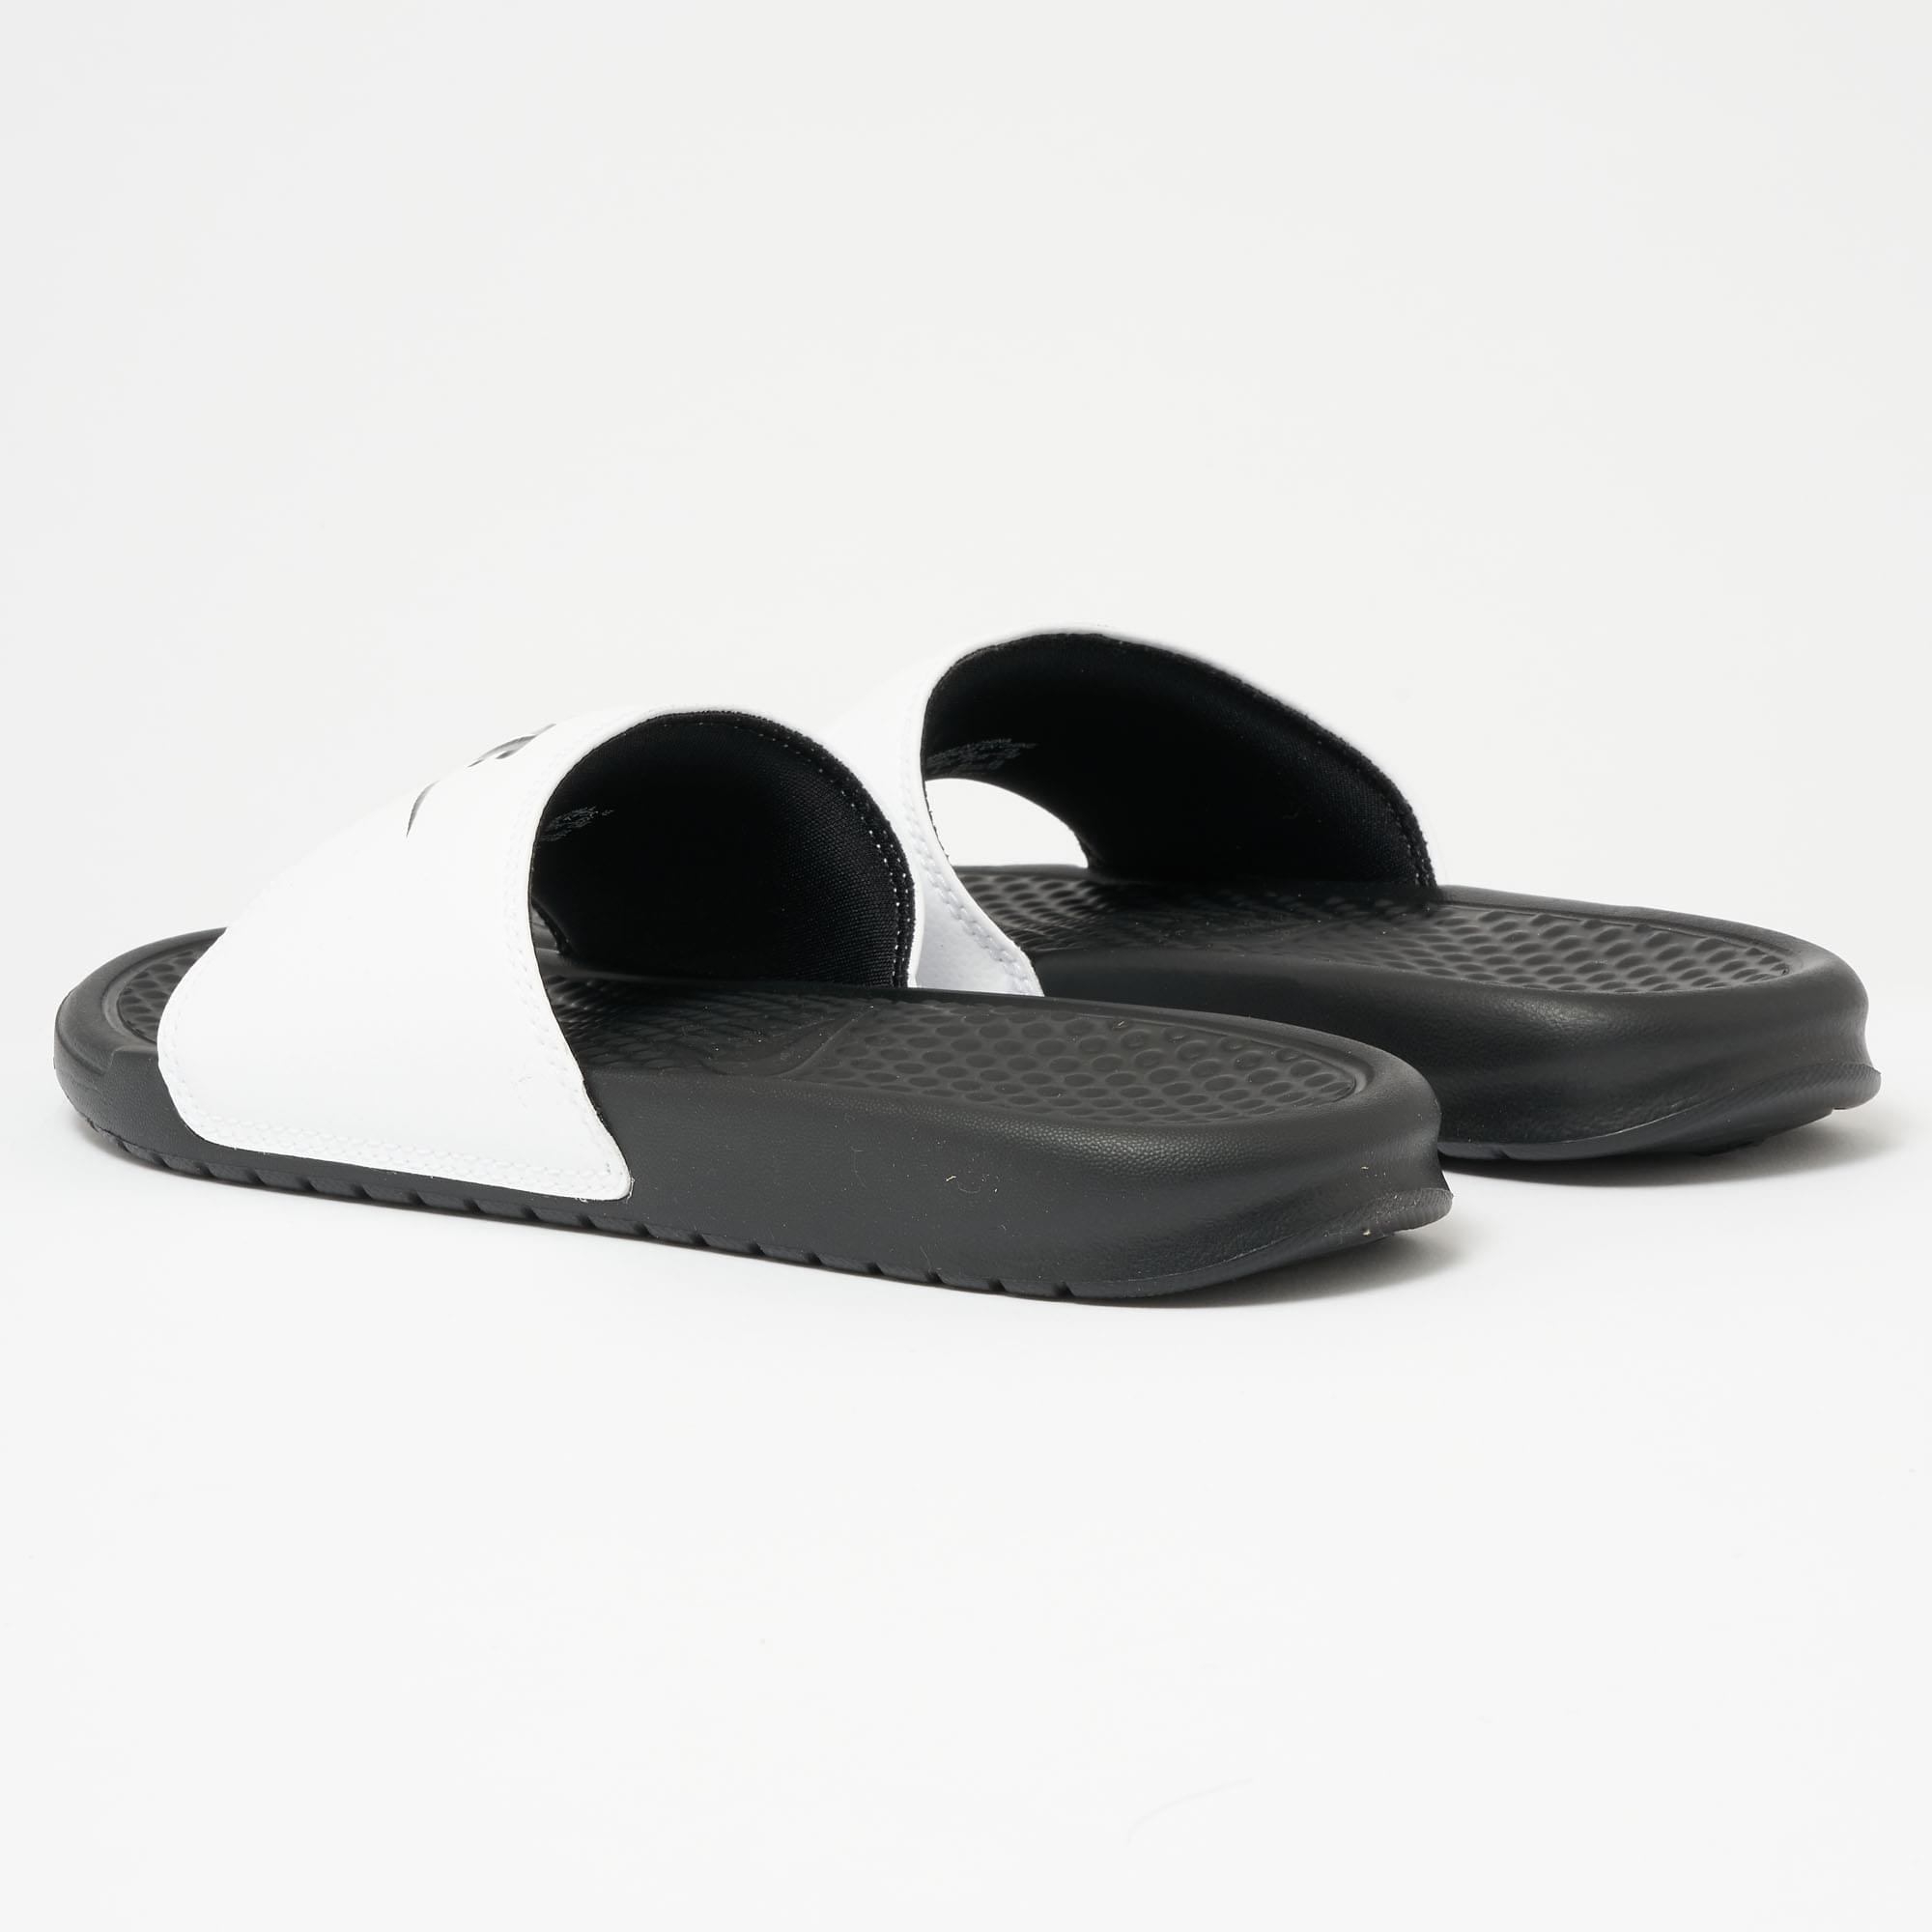 best sneakers cc4e2 777ed Nike - Multicolor Benassi Jdi Sliders for Men - Lyst. View fullscreen